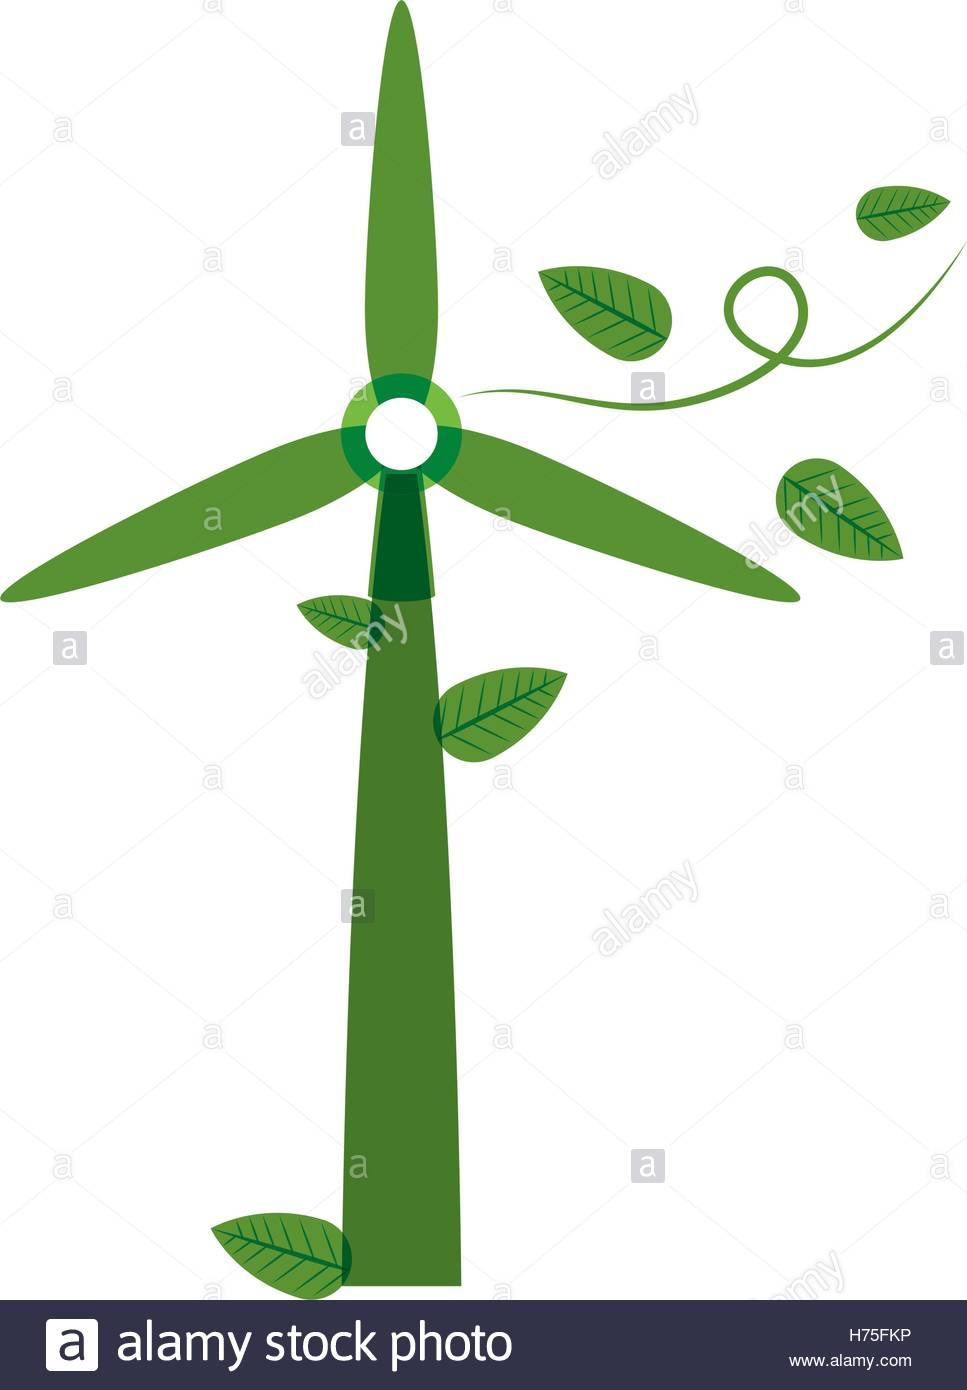 967x1390 Green Silhouette Wind Power Generator With Leaves Vector